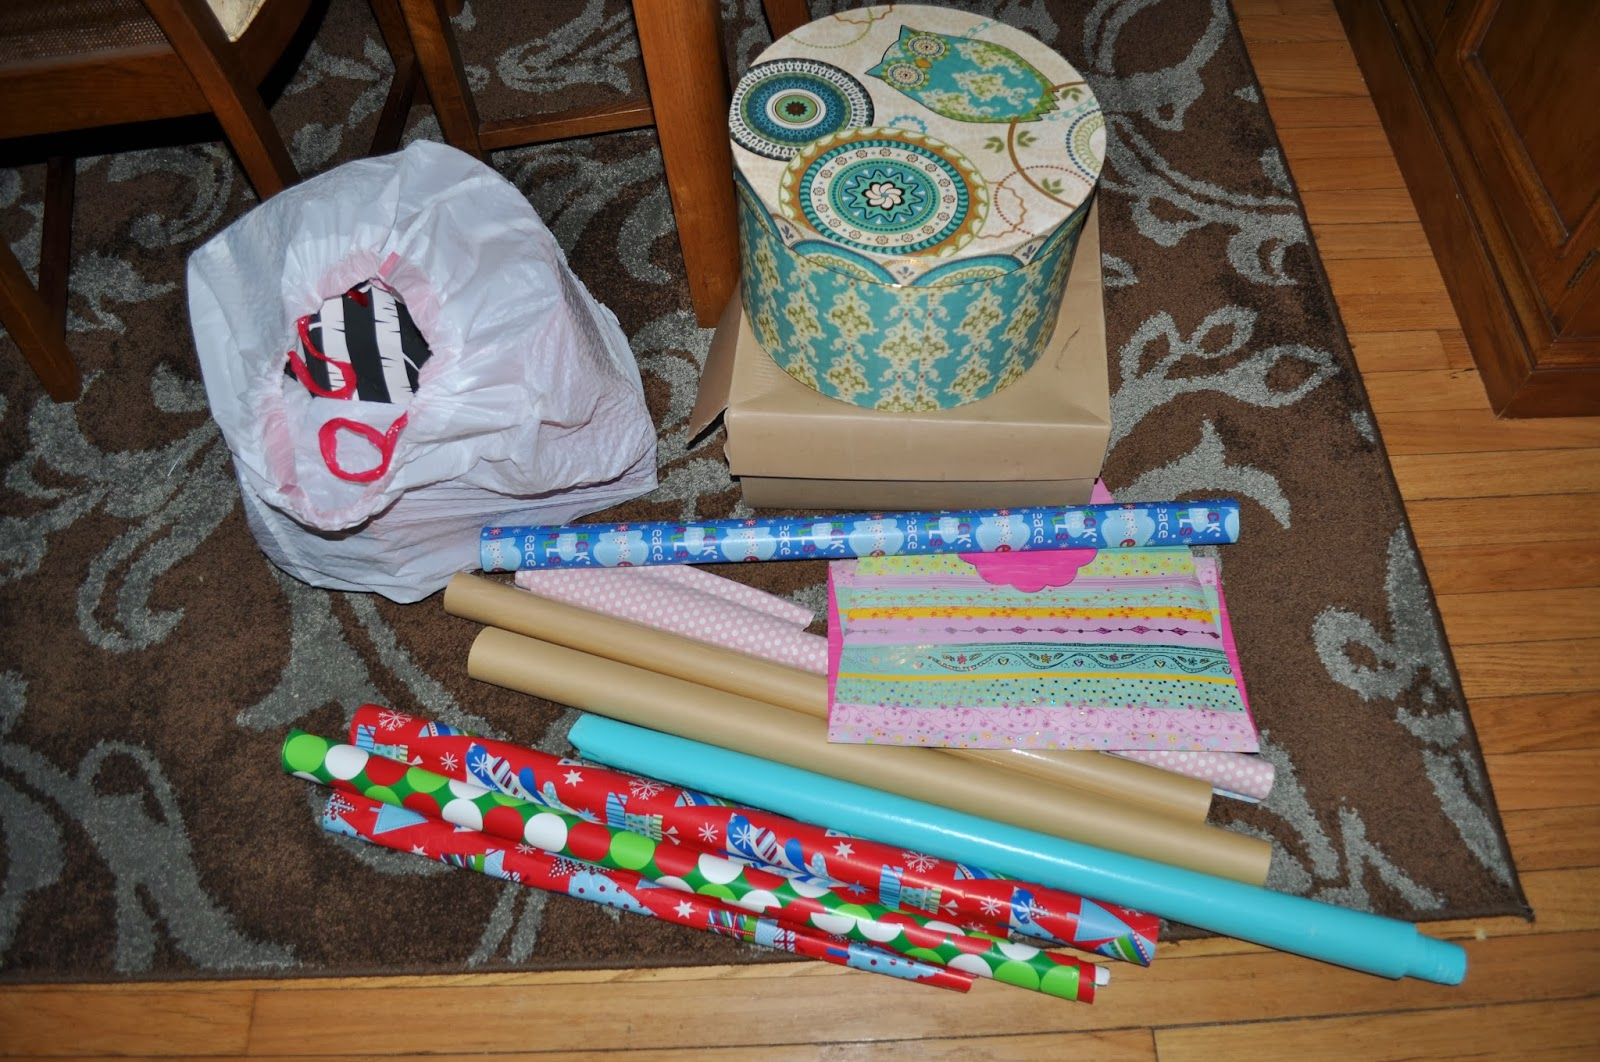 target gift wrap station, gift wrap station, organization, wrapping paper, under the bed storage